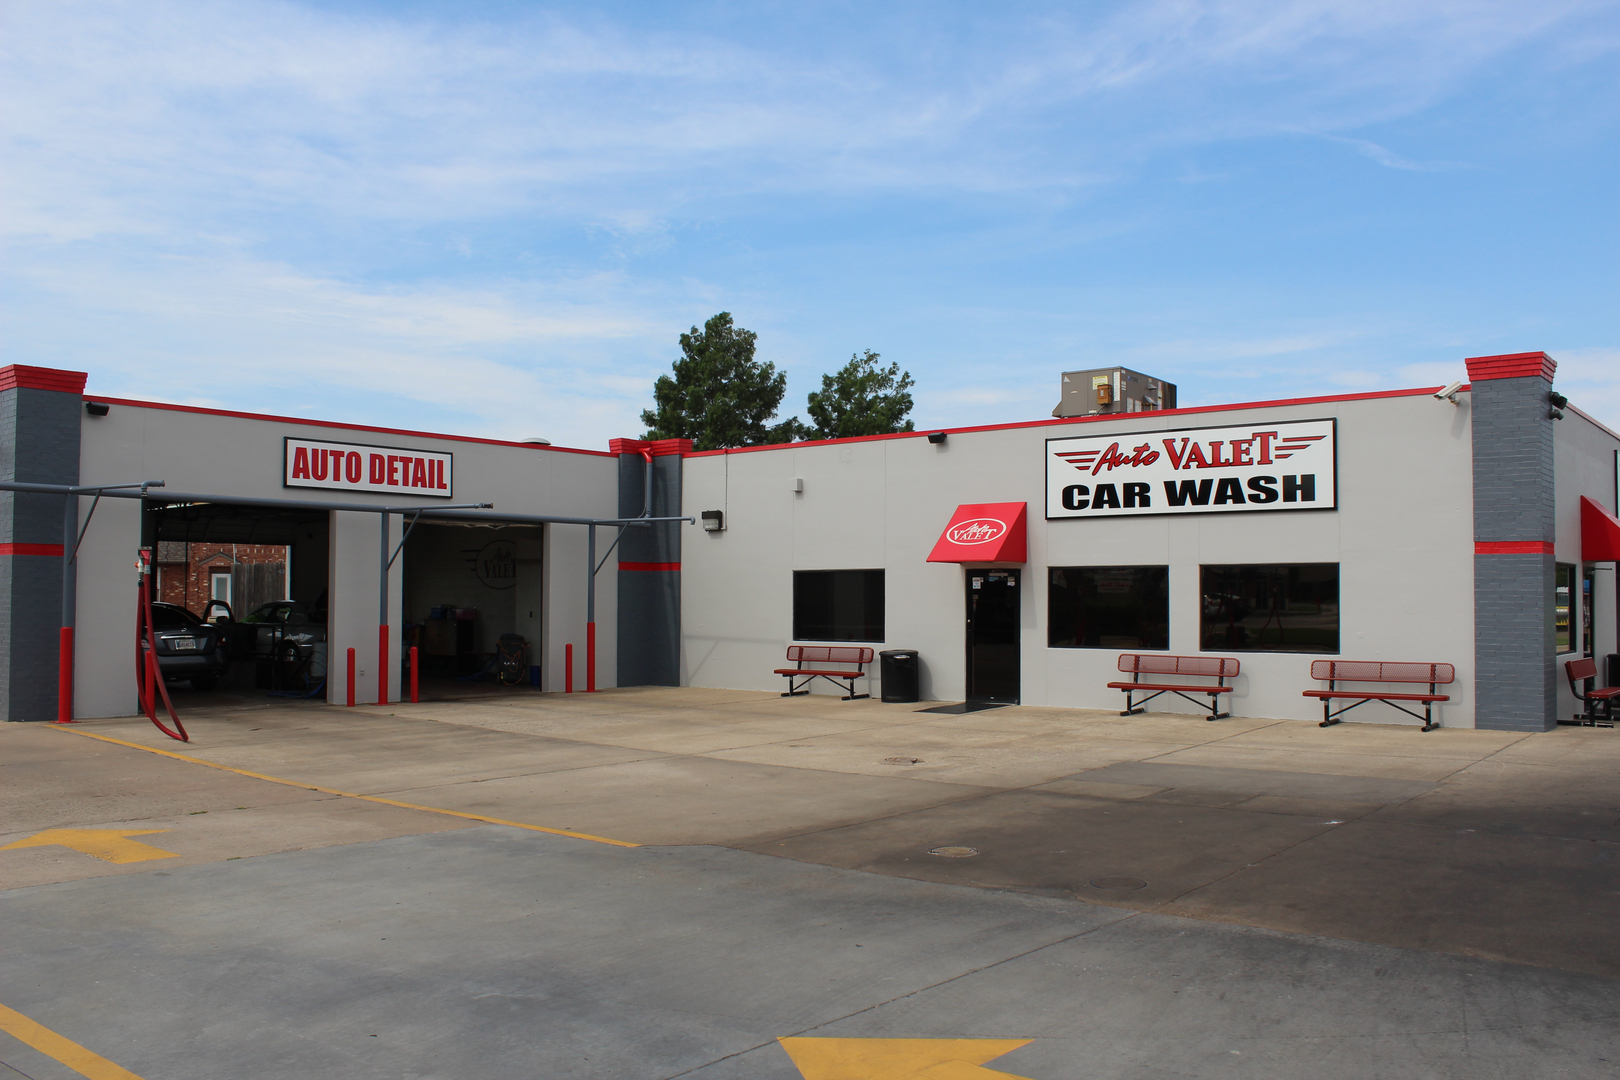 Full service car wash in normandetailing window tint vacuums whether you own an import a domestic or a high performance exotic car we are the place to take your car for a wash detail or even a window tint solutioingenieria Image collections